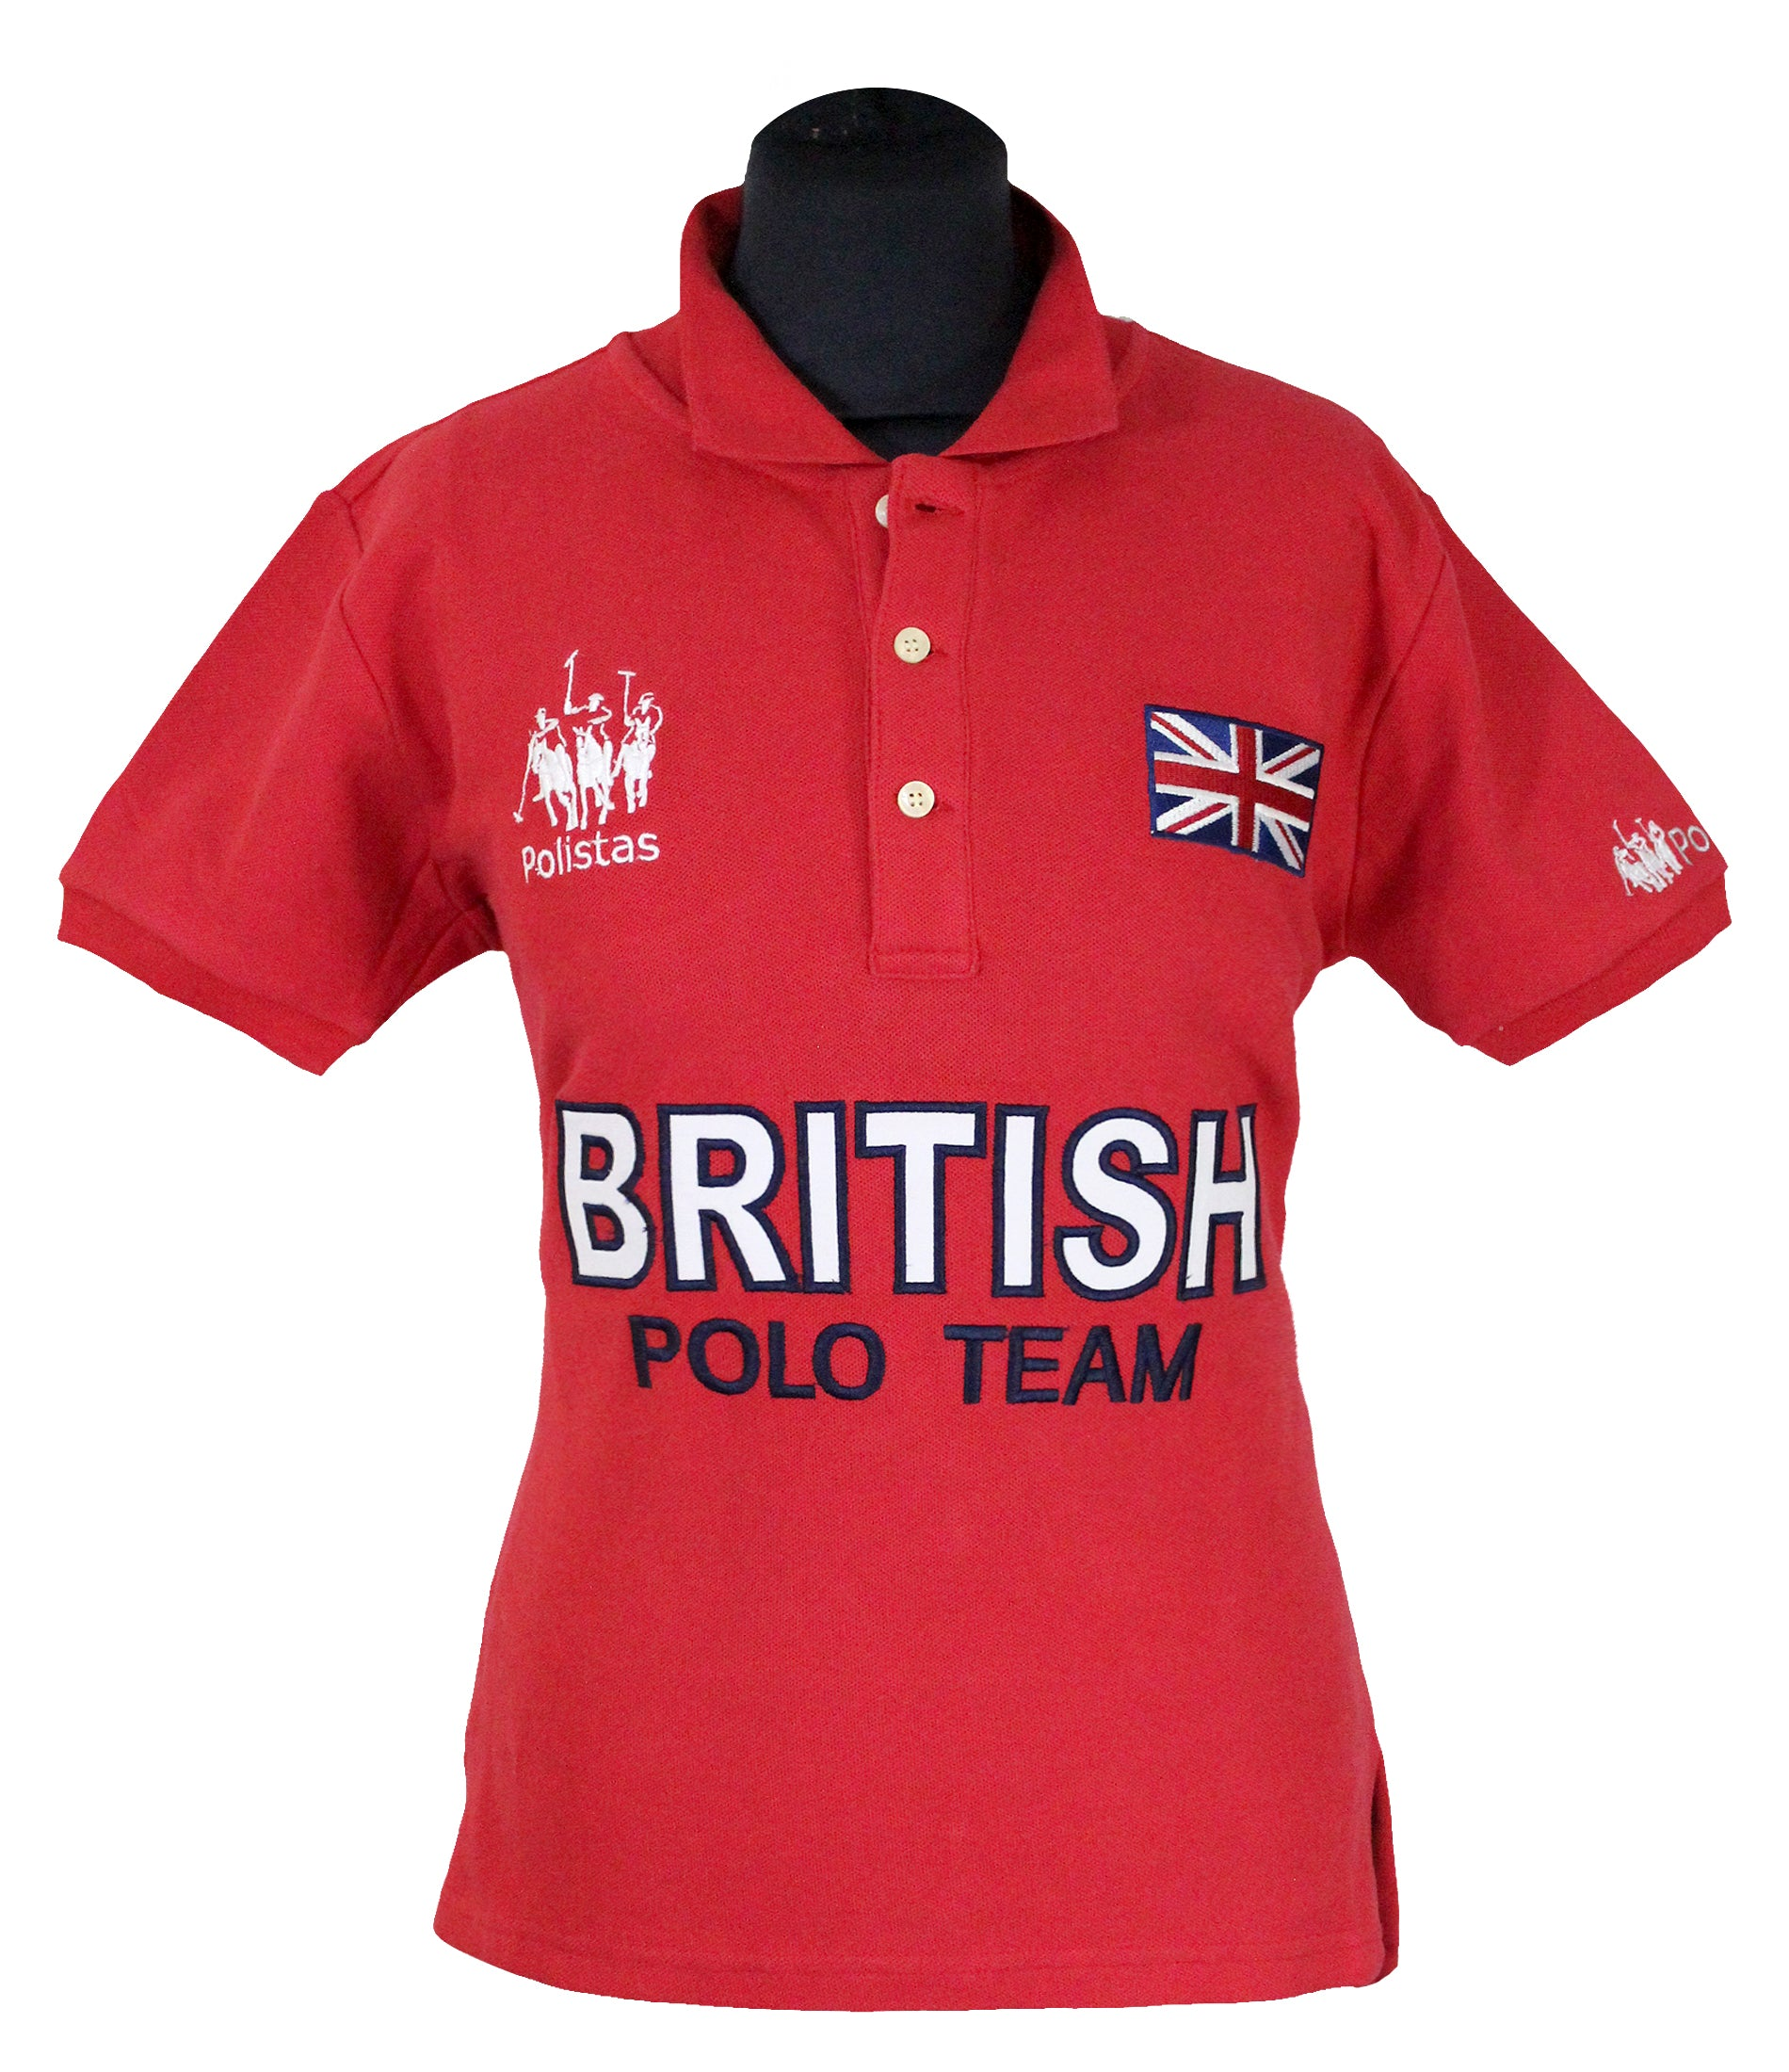 Polistas Ladies British Polo Team Red Polo Shirt RRP £99.95 NOW £25.00